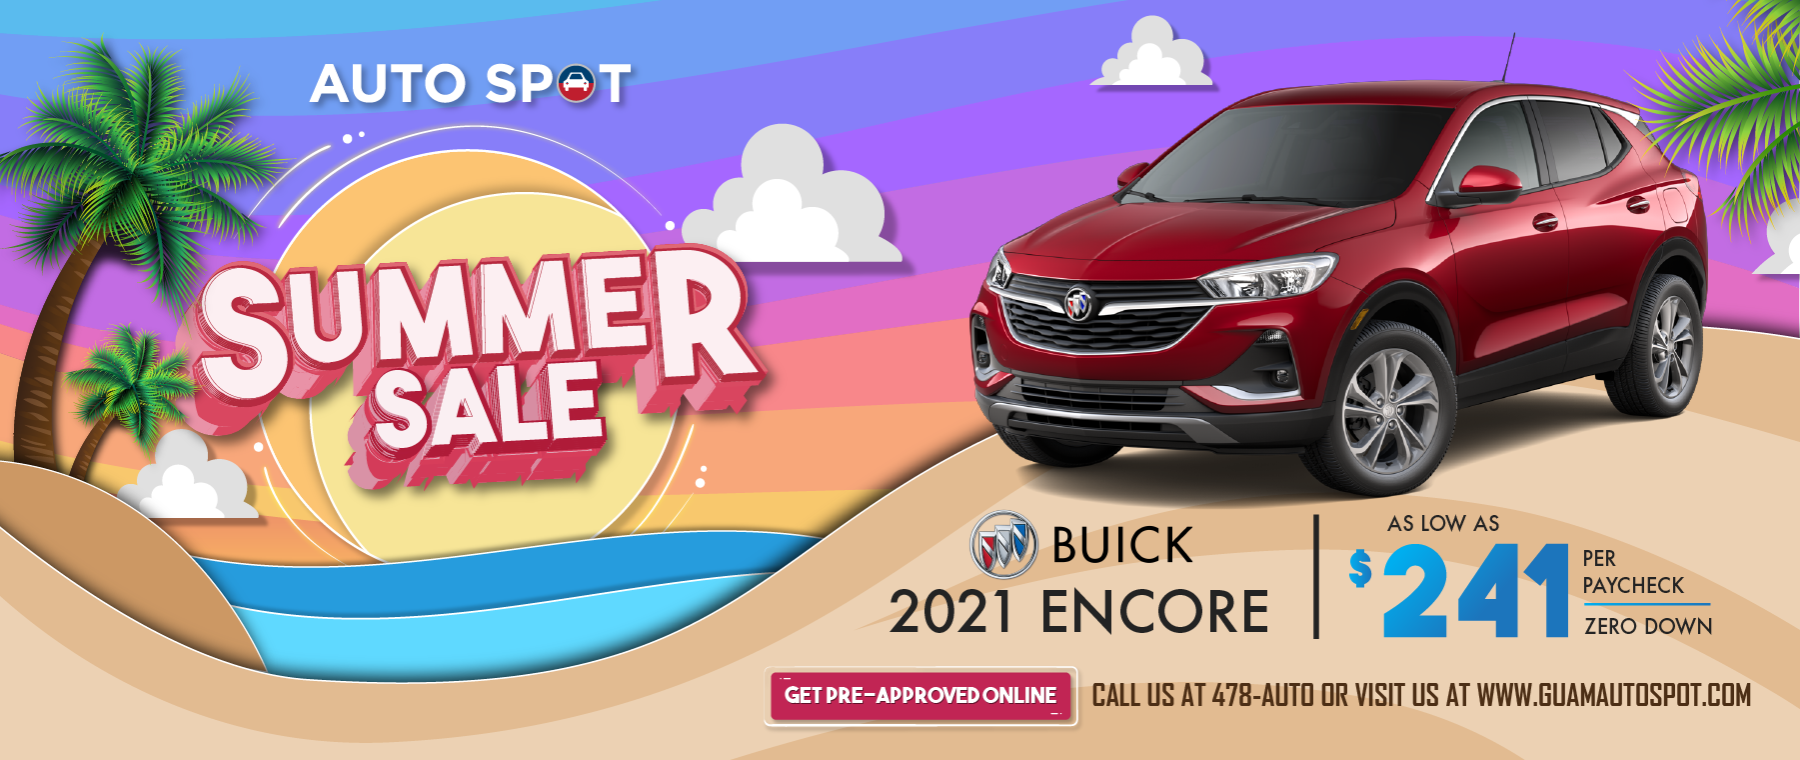 Buick_Web Banner 1800 x 760 px